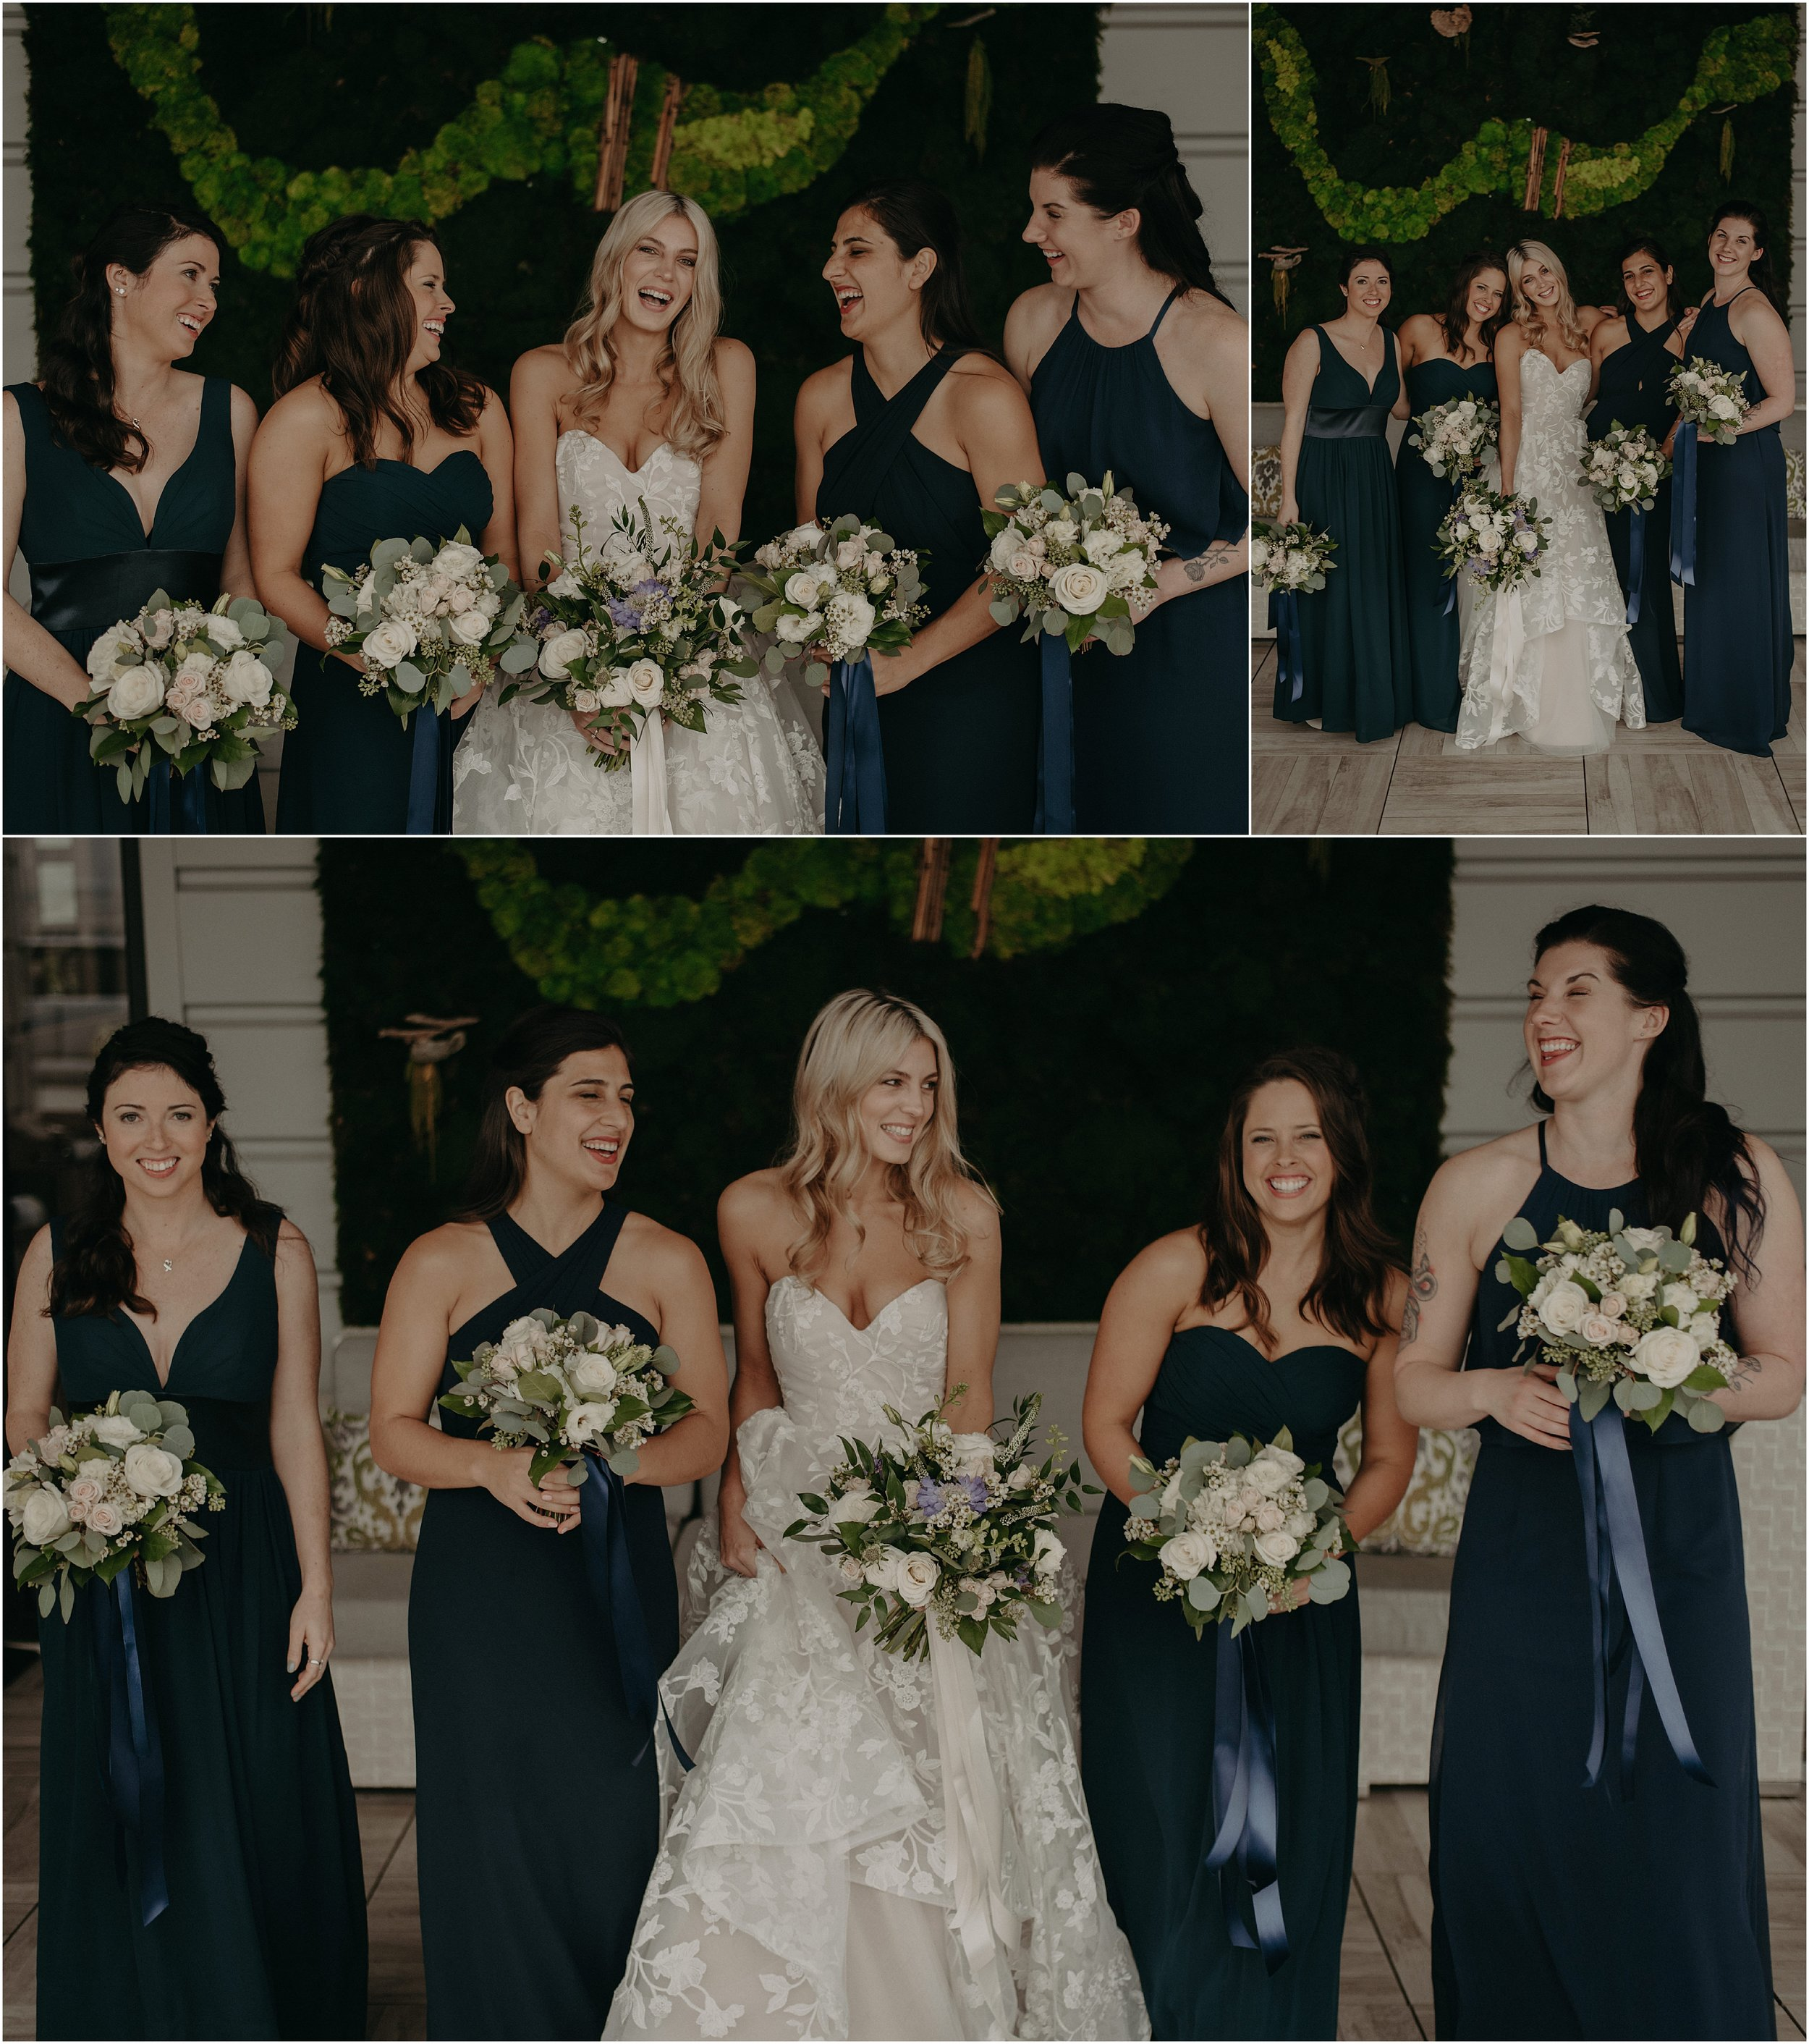 The bridesmaids wore navy blue with floral design by May Flowers